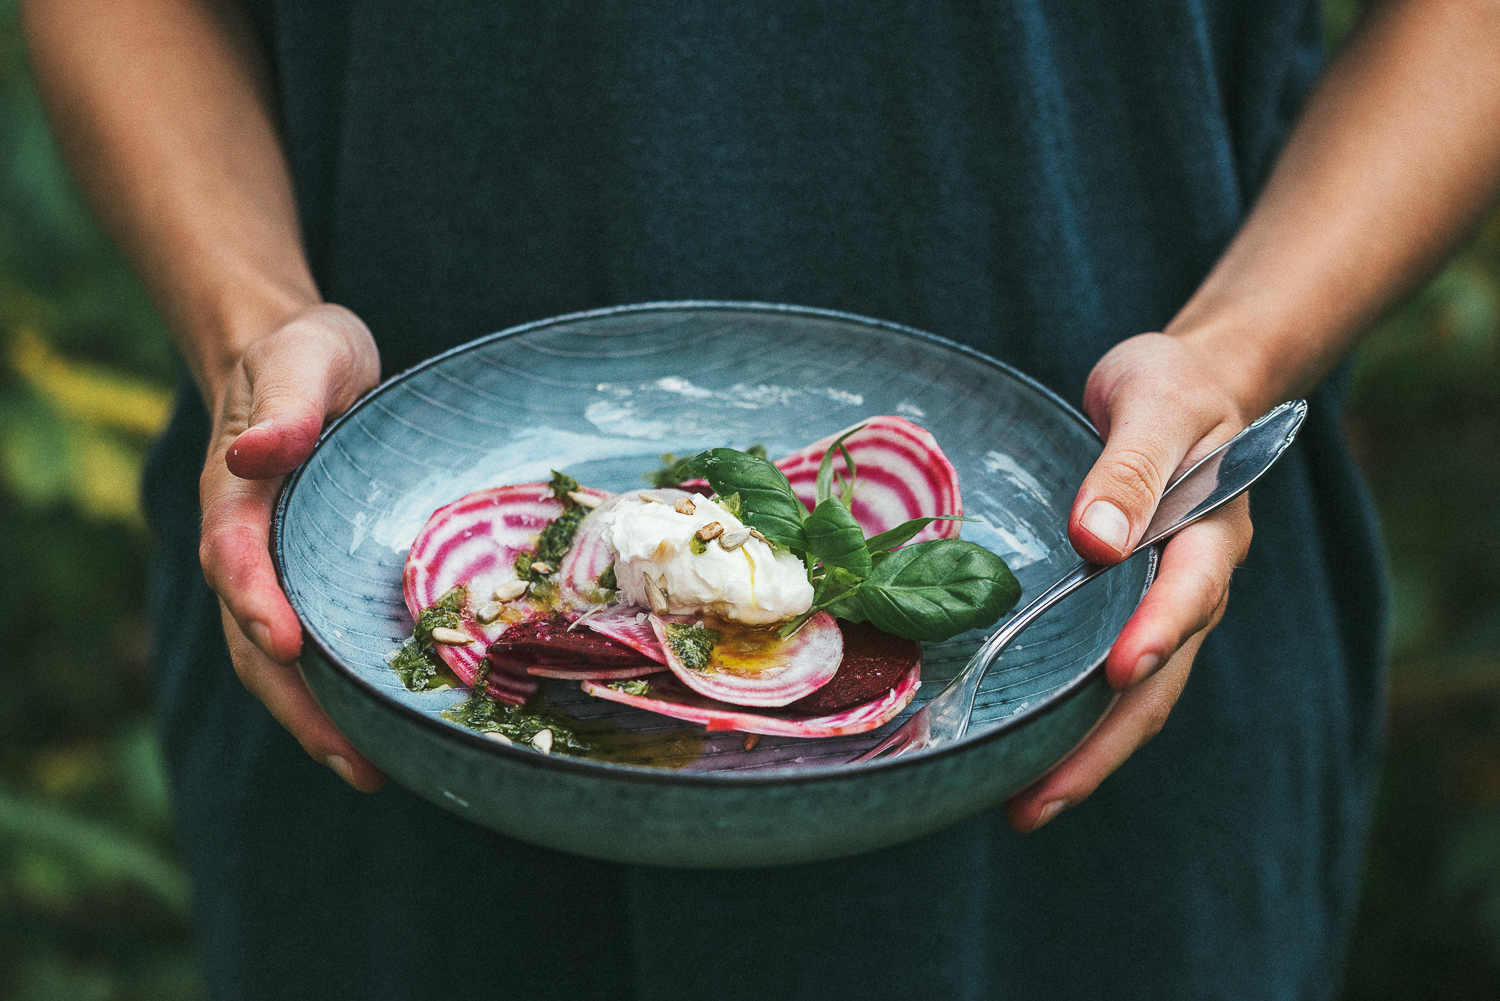 Polka Beet Carpaccio with Goat Cream Cheese & Tarragon Pesto | Cashew Kitchen (photo: Rania Rönntoft)